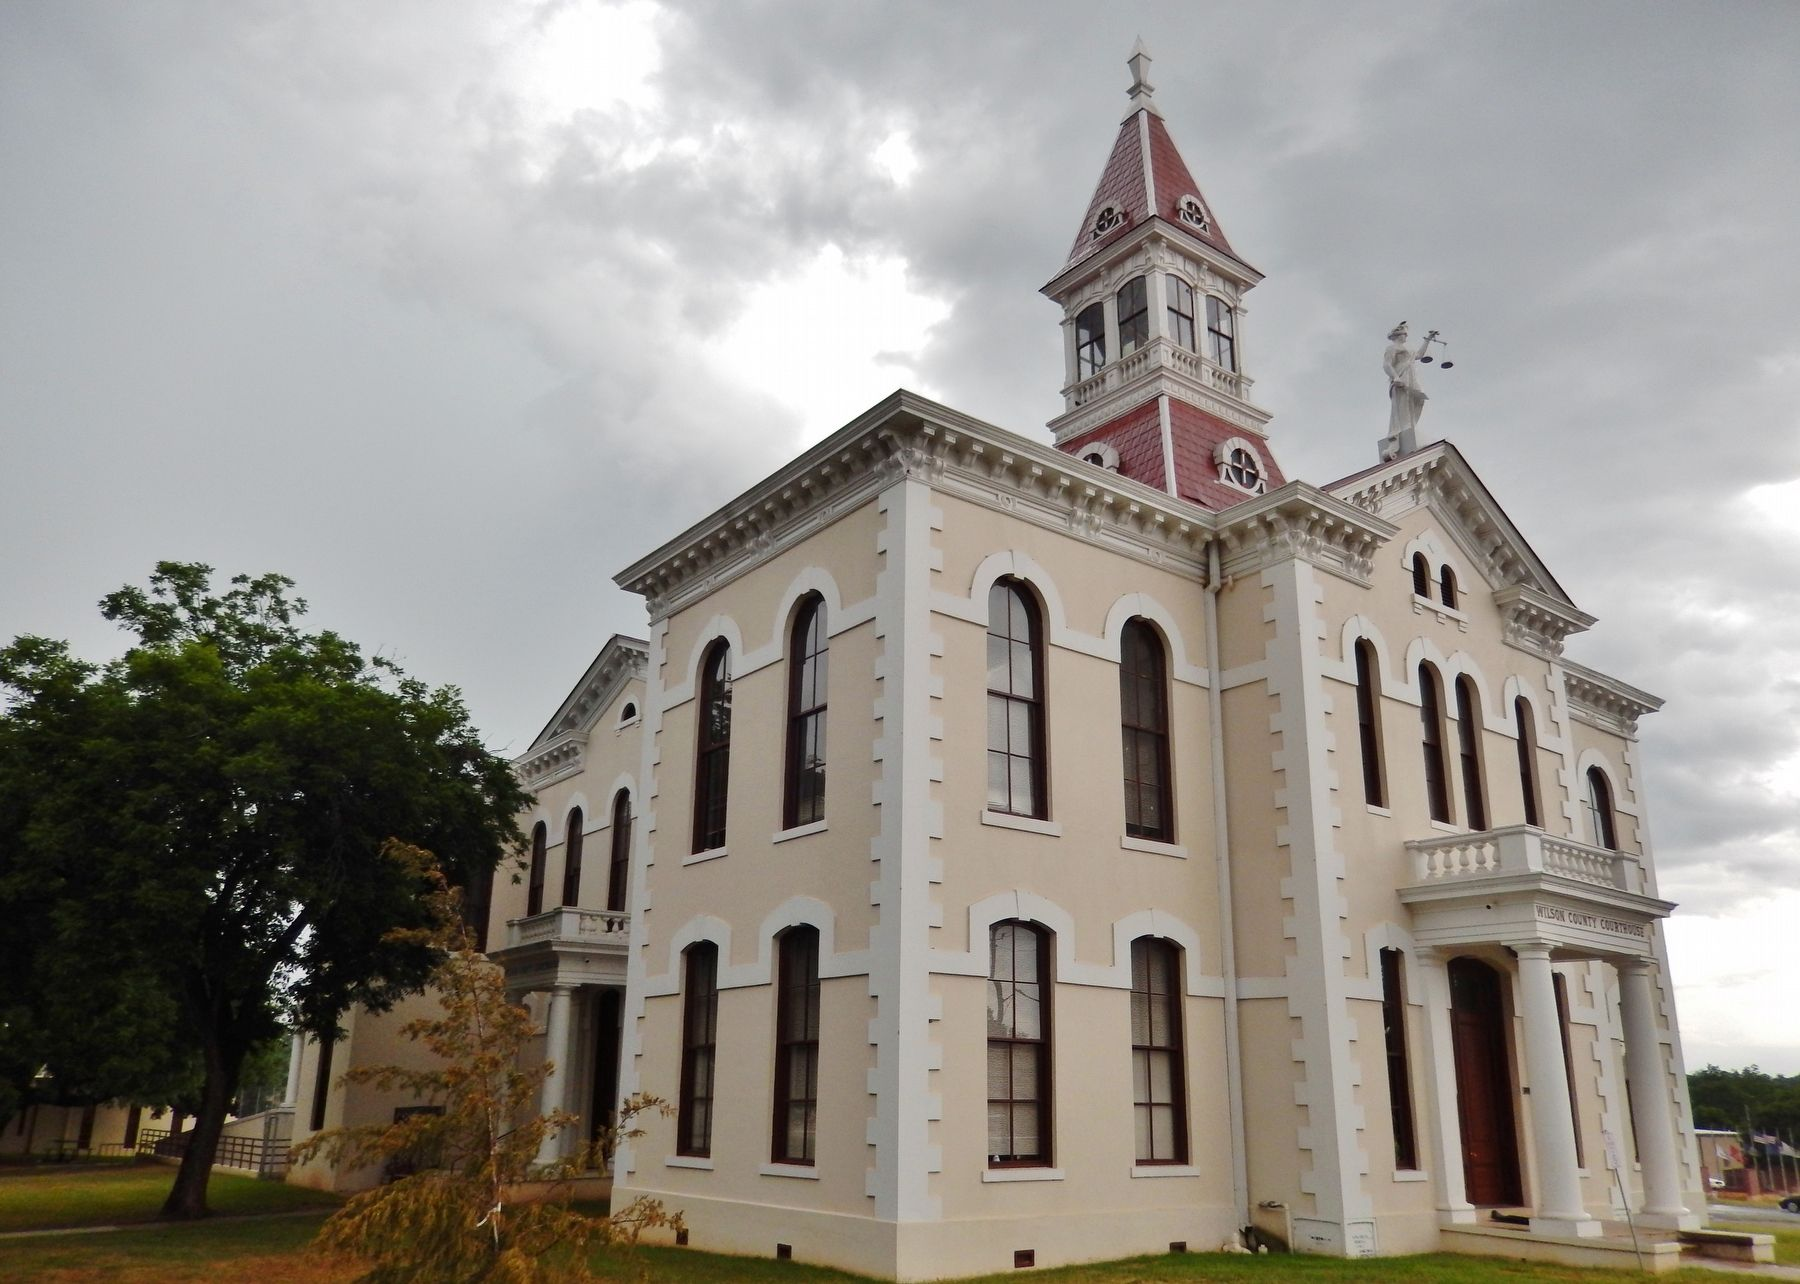 Wilson County Courthouse (<i>northwest corner view</i>) image. Click for full size.